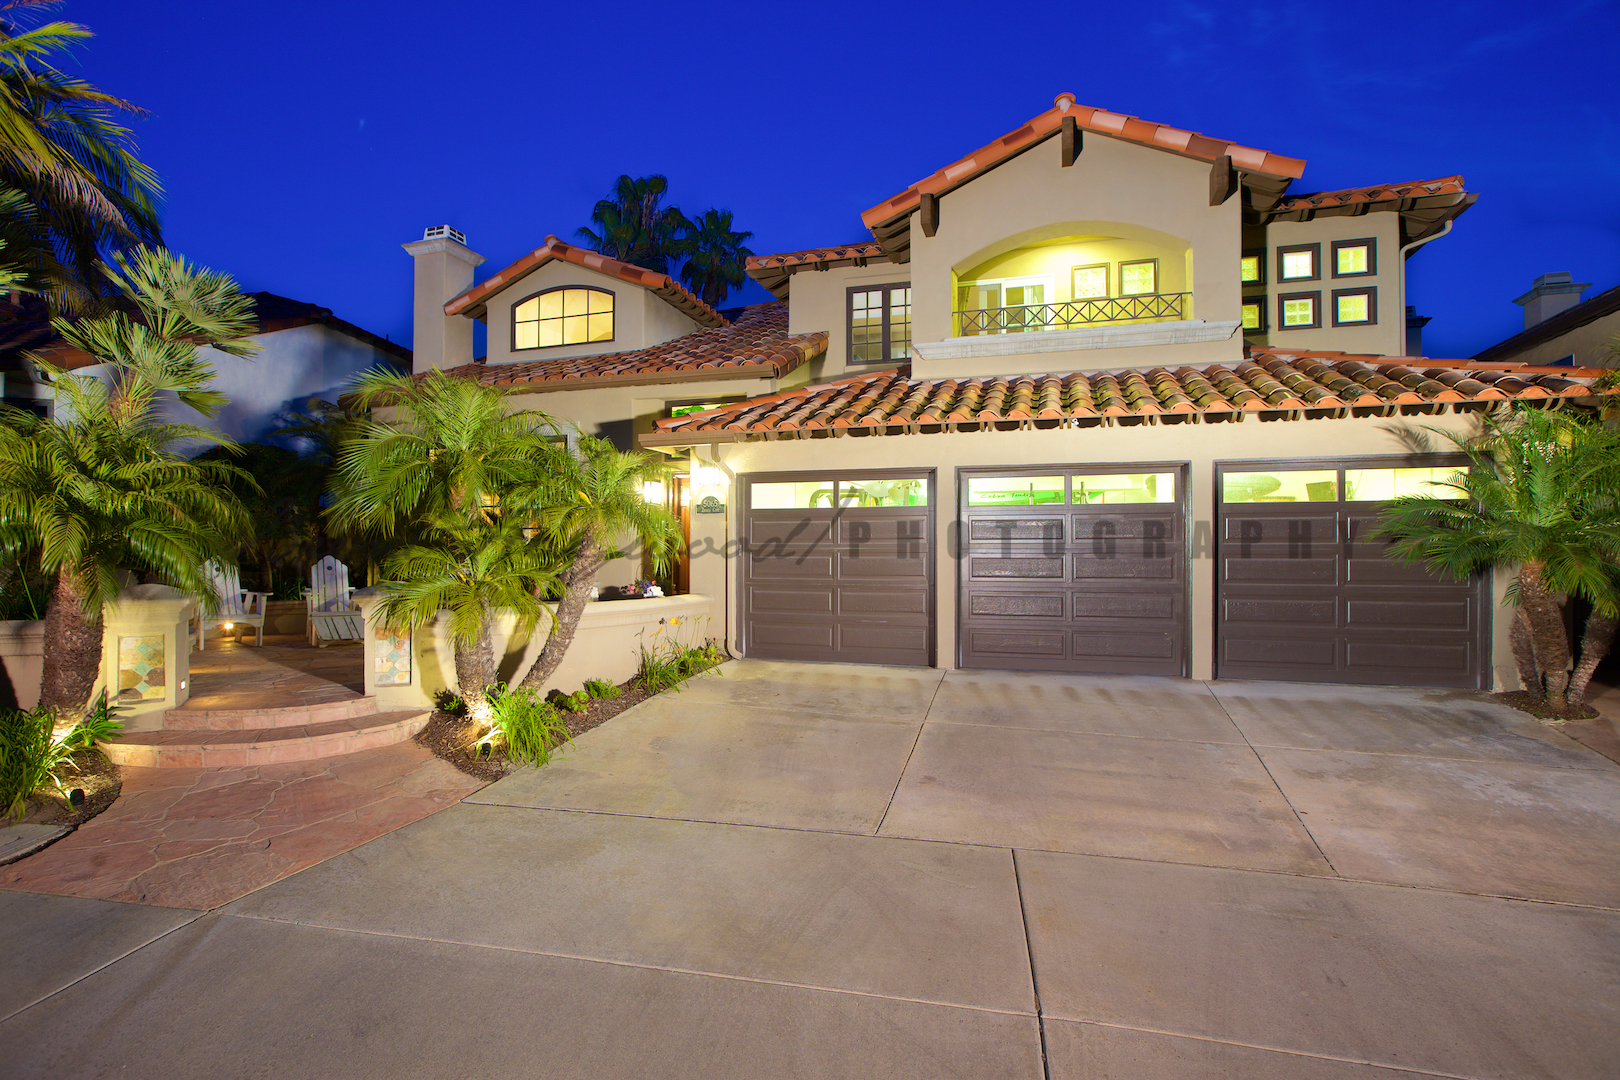 San-Diego-Real-Estate-Photography-Photographer.1jpeg